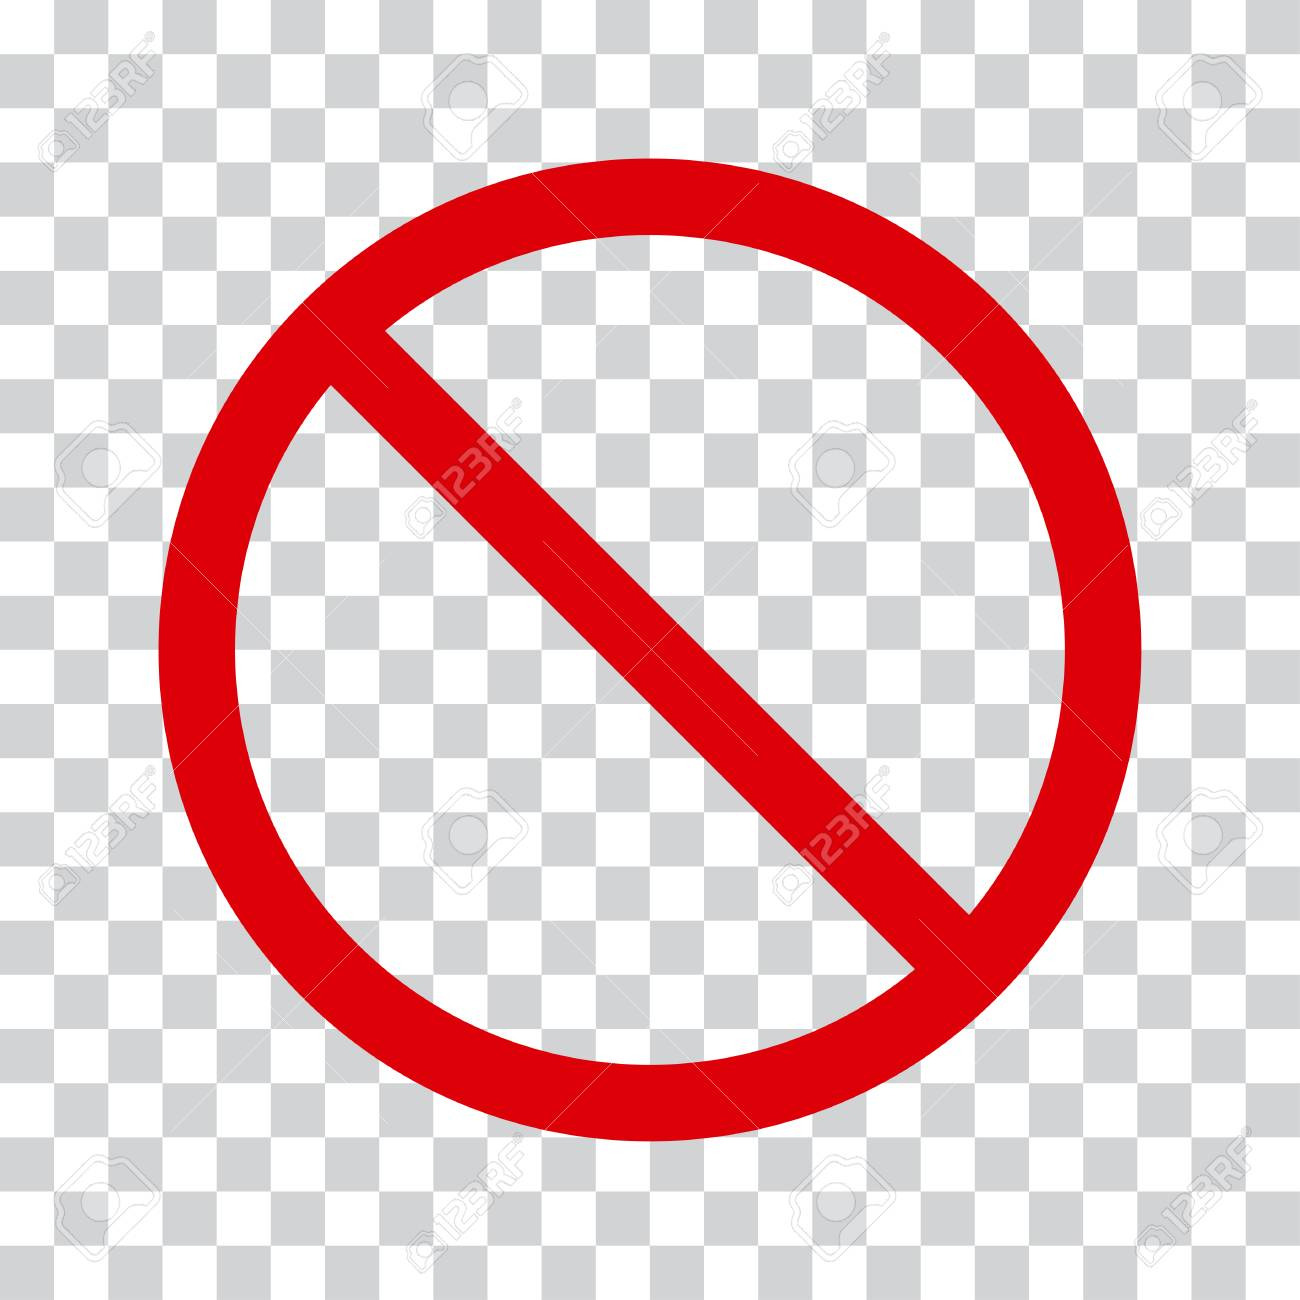 Red stop icon on transparent background. No symbol Vector illustration - 89037069